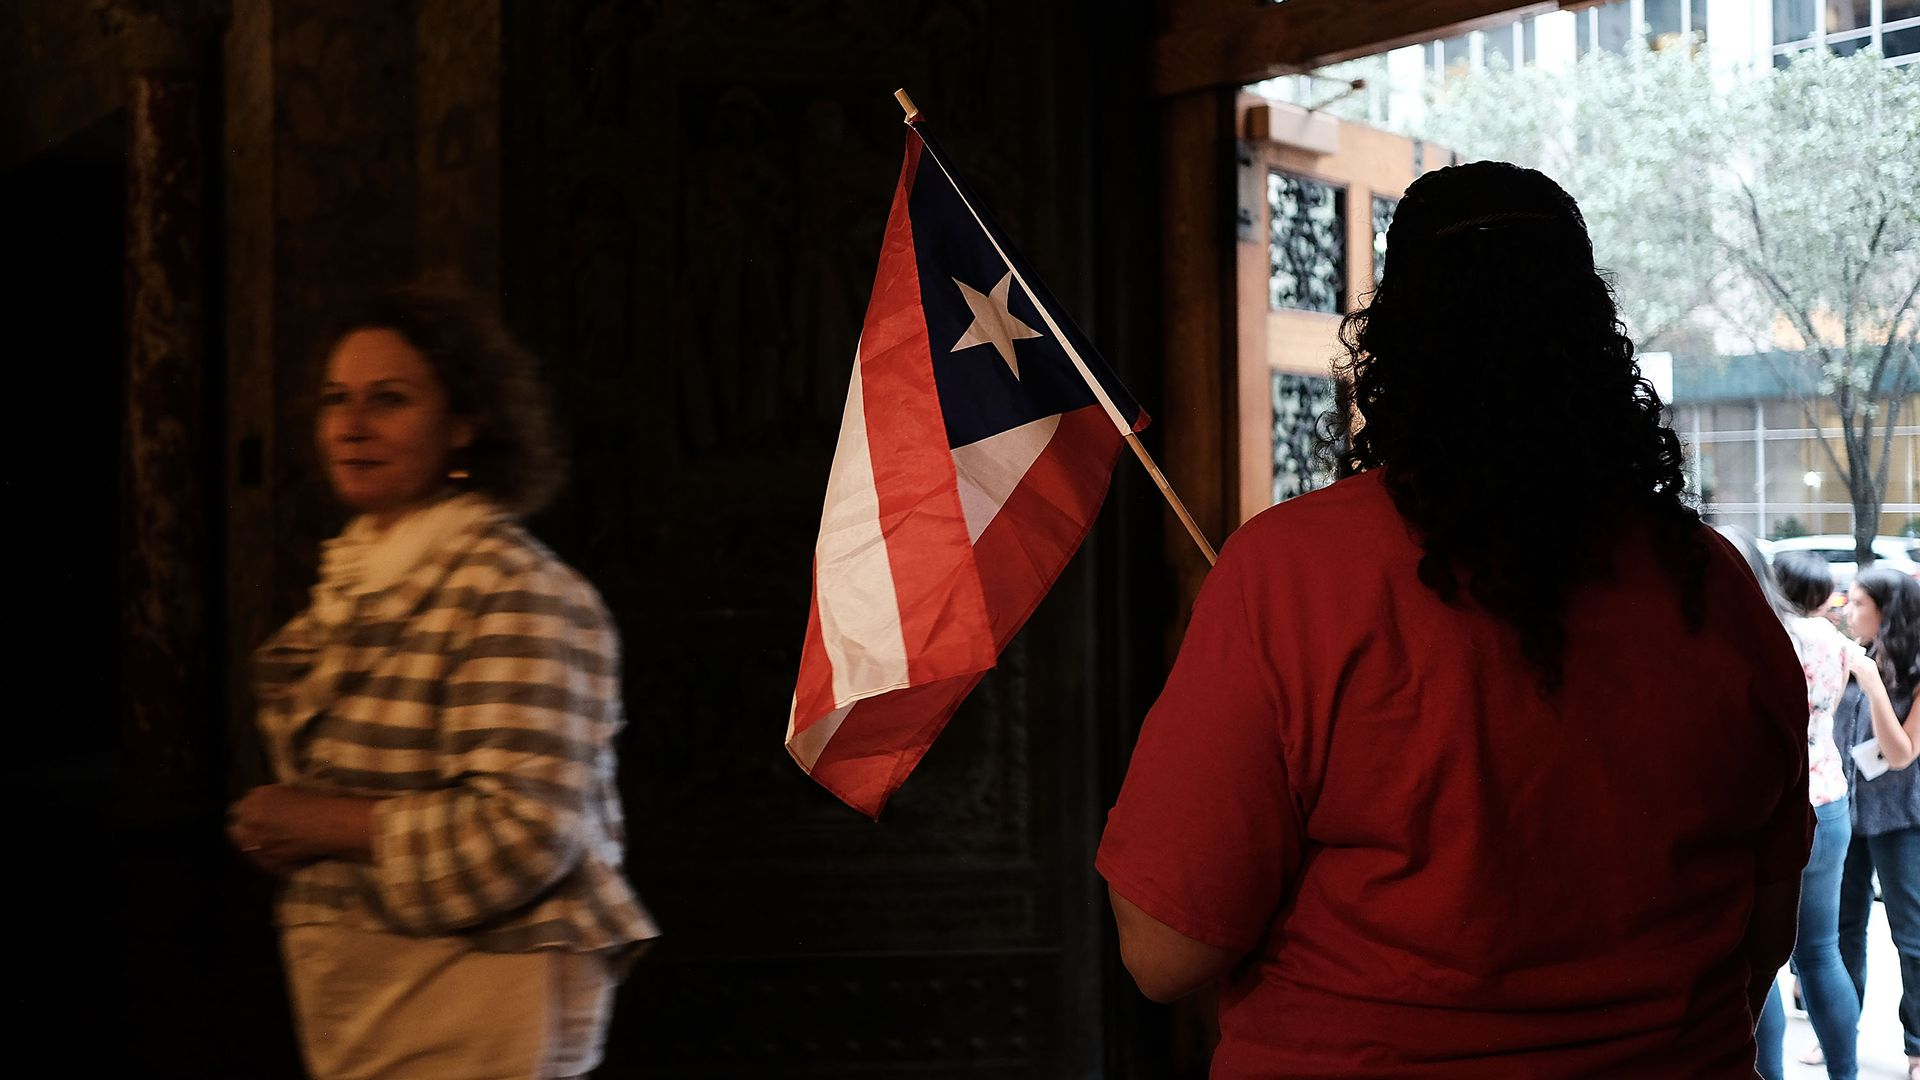 A person holds a Puerto Rican flag.